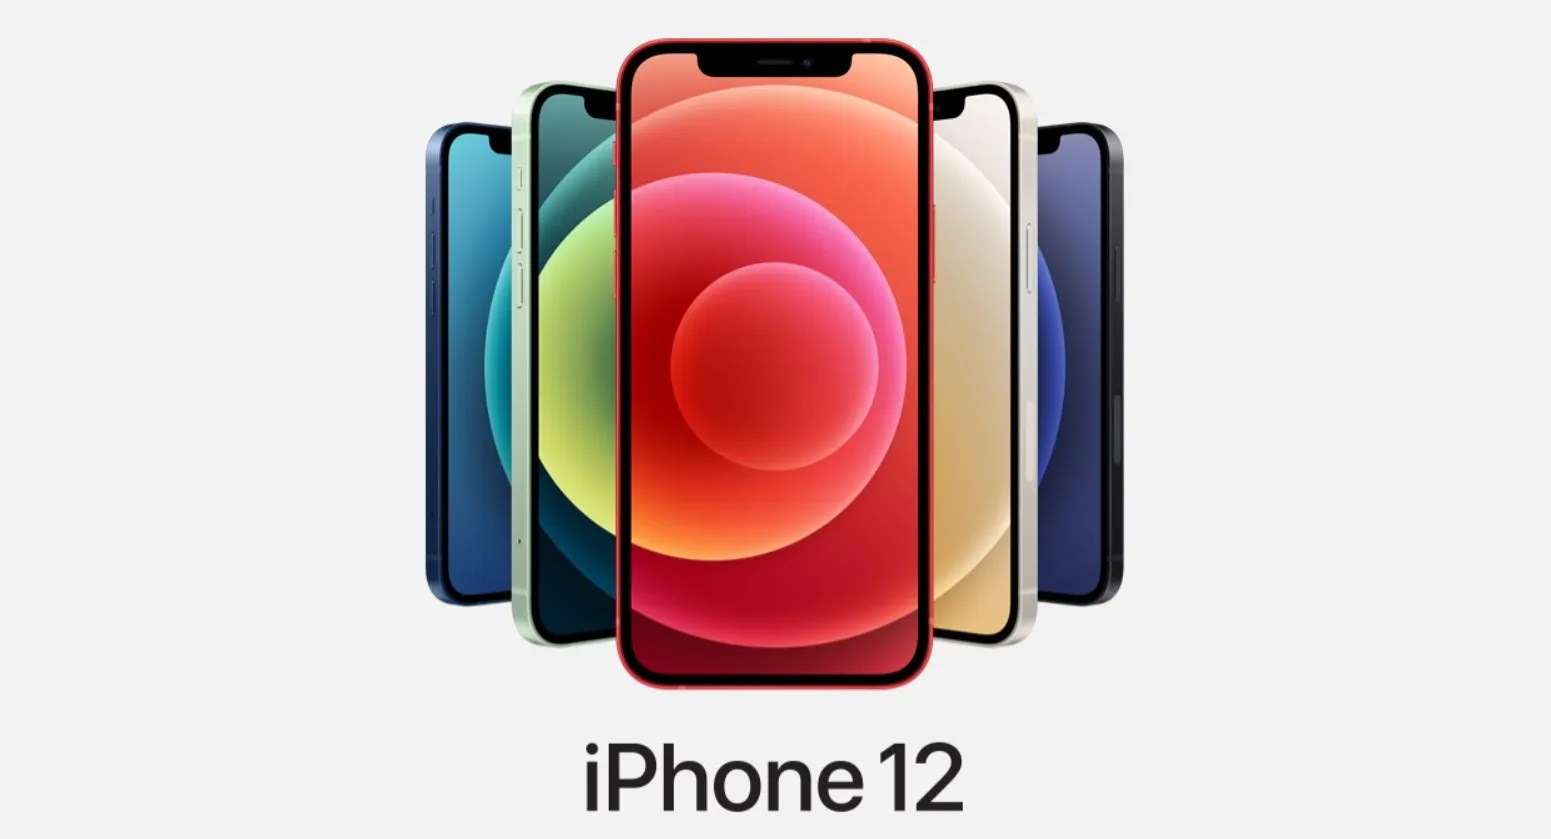 Awesome Iphone 12 Pro Max Live Wallpaper 4k Download wallpapers to download for free greenvirals